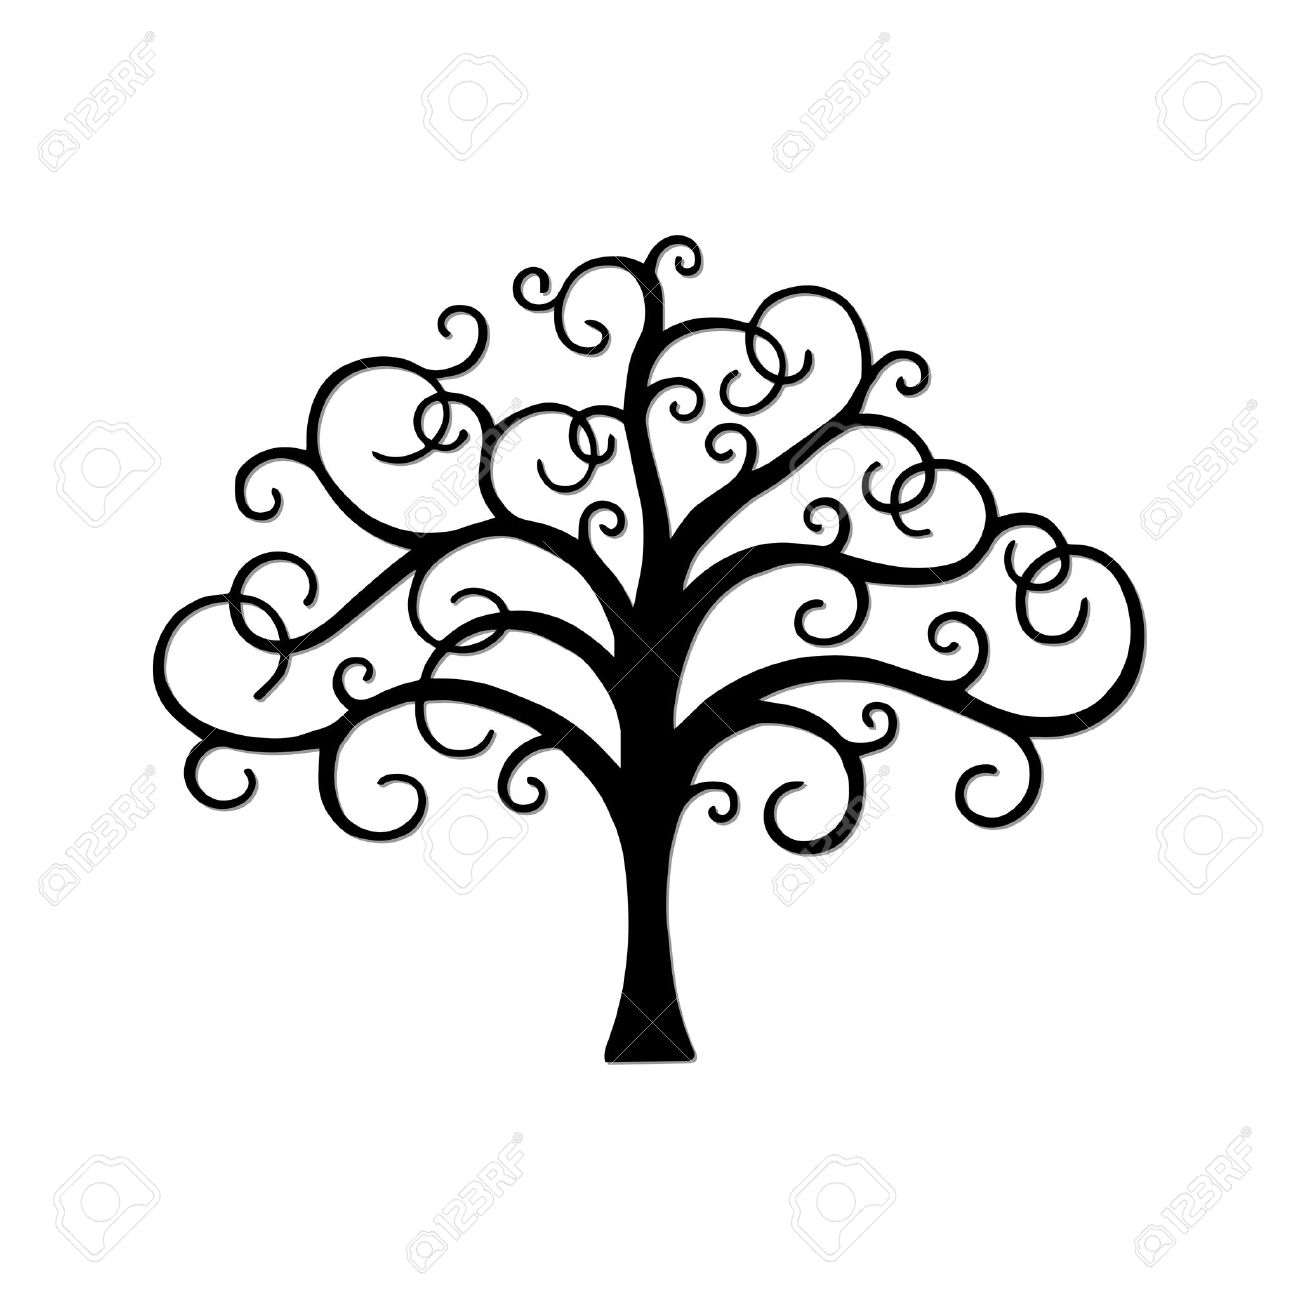 Tree stock vector 32481665